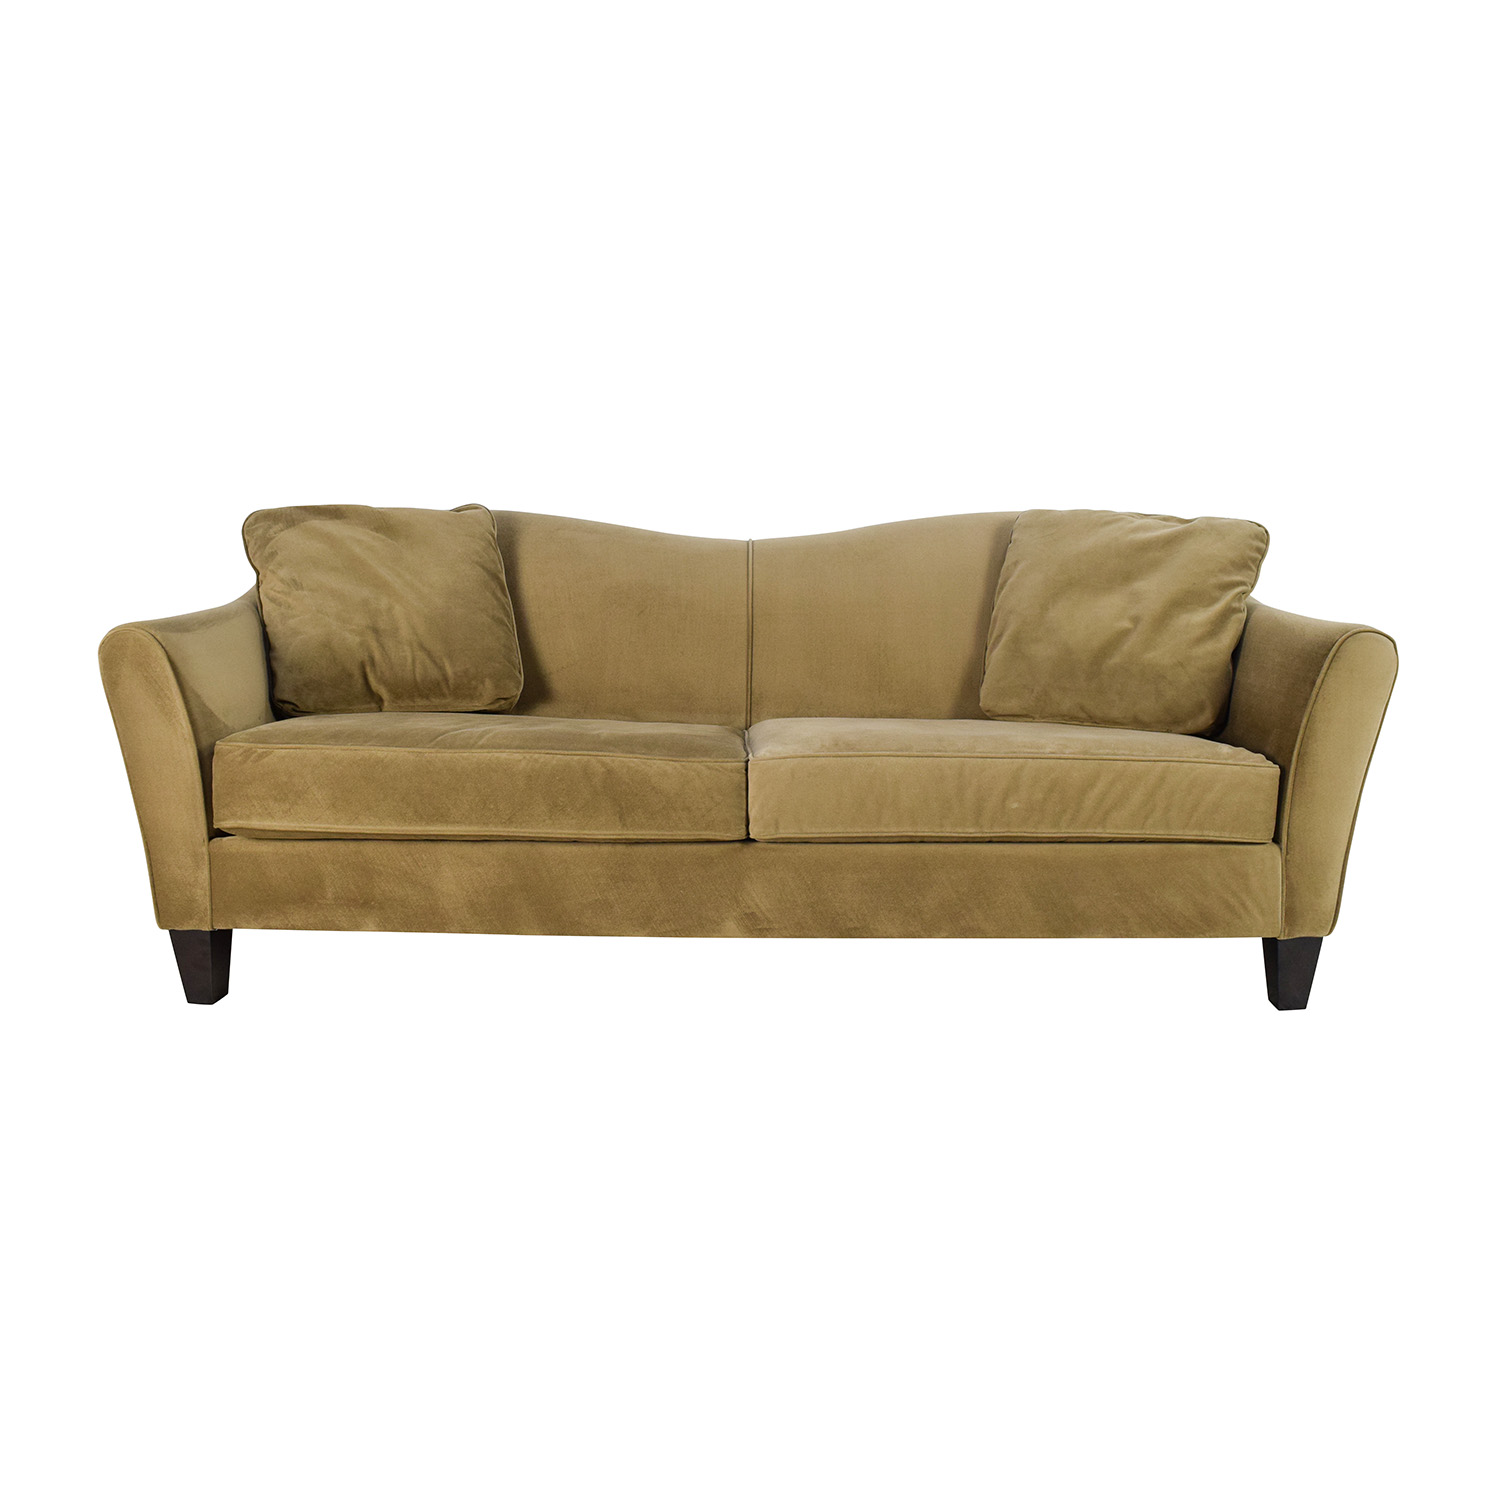 Raymour and flanigan sofa sofas sofa couches leather sofaore raymour and thesofa Couches and loveseats